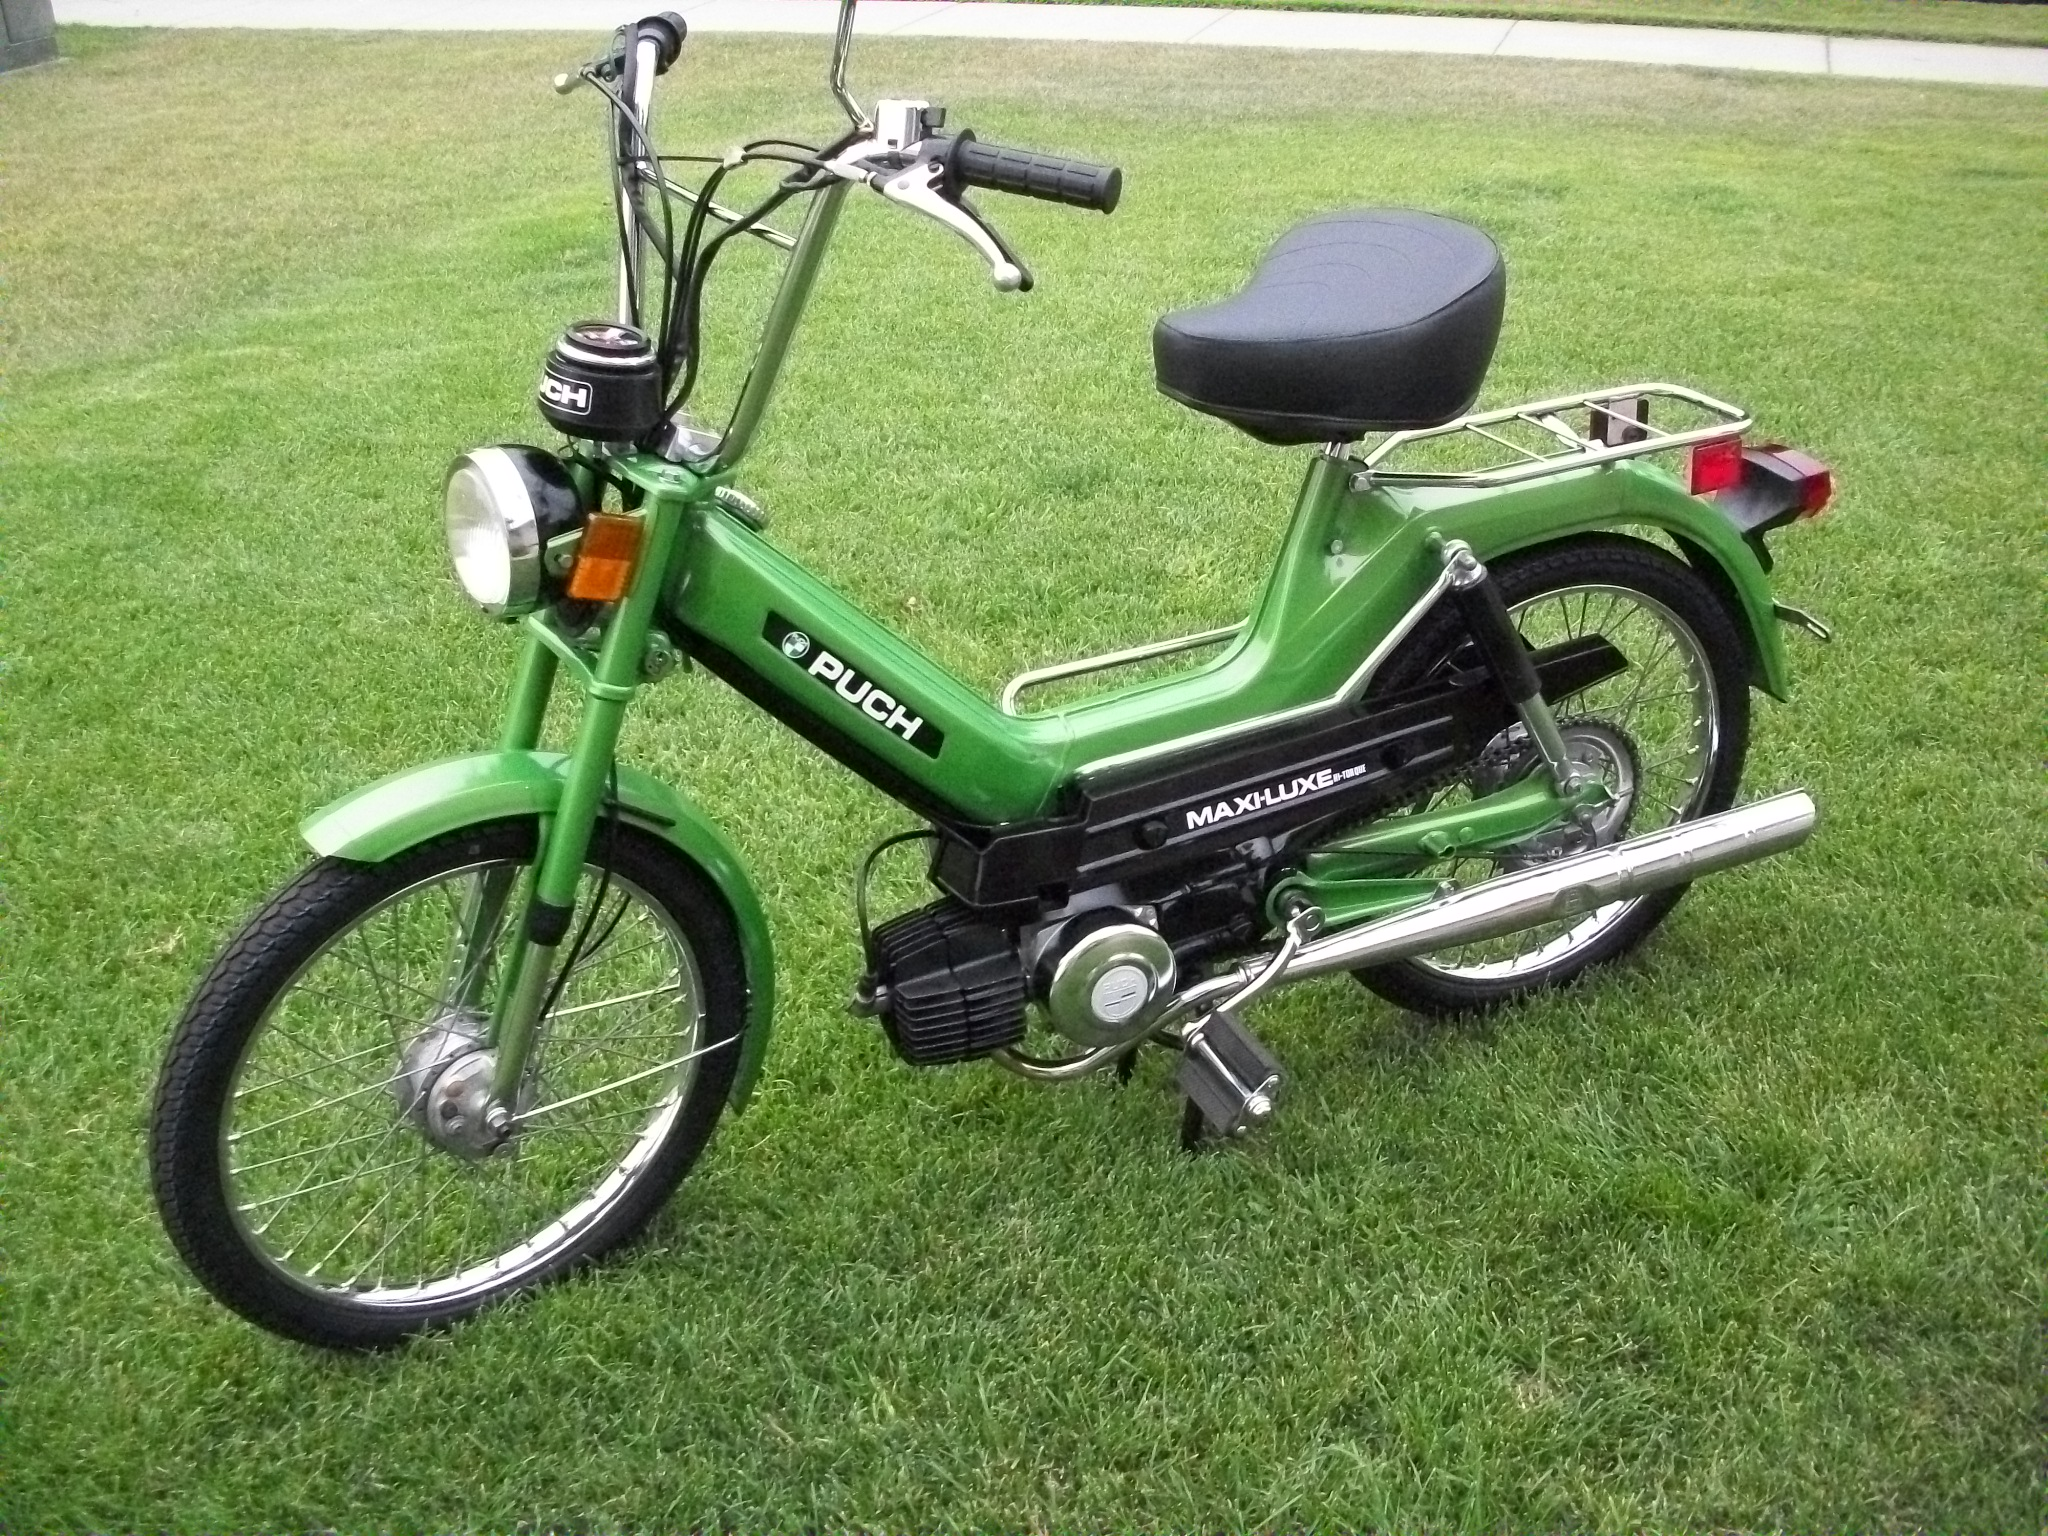 1978 Puch Maxi Luxe Green Auto Electrical Wiring Diagram 78 Motobecane Sunday Morning Motors